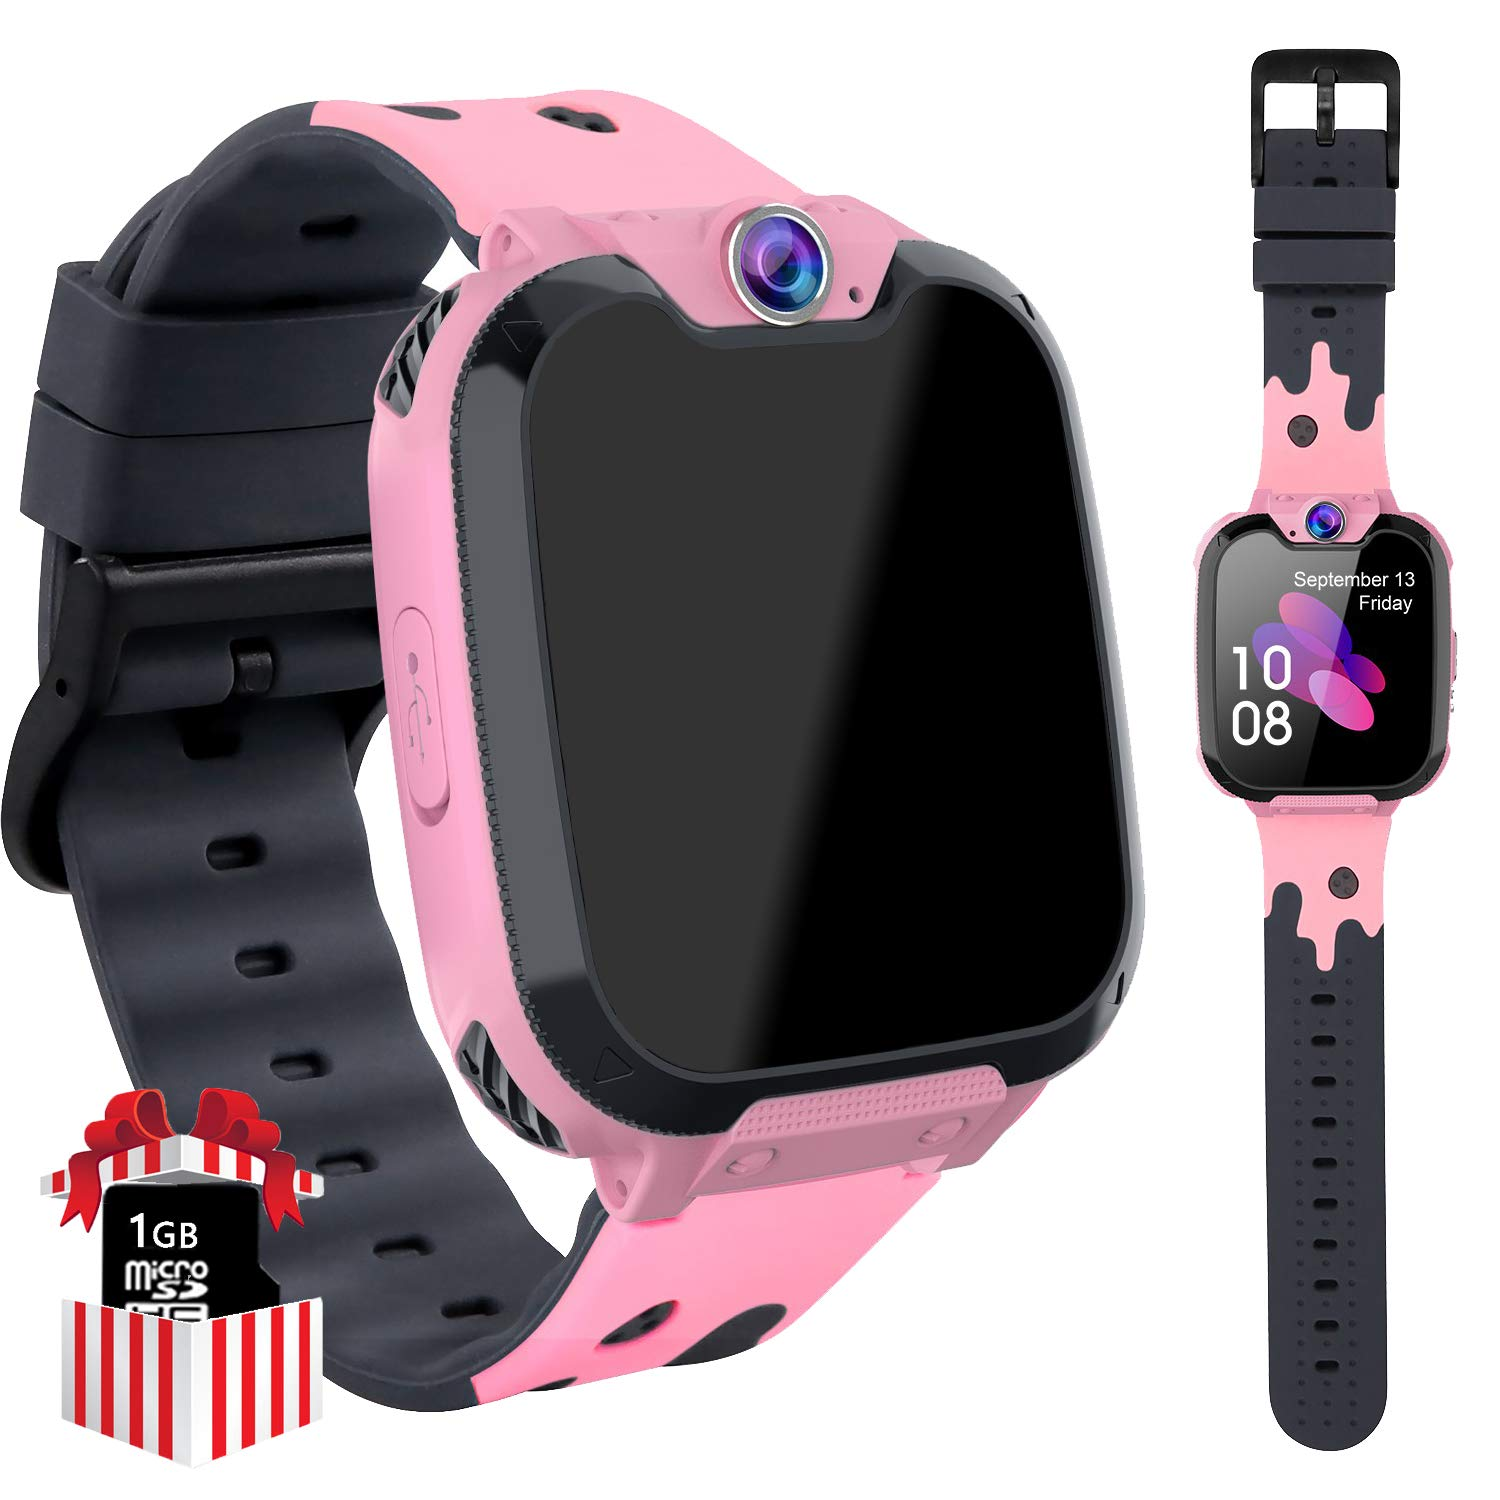 Kids Smartwatch without SIM for Girls Boys - 7 Games Children Touch Screen Wrist Watch Phone with SOS Call Camera Music Player Calculator 12Hrs ...